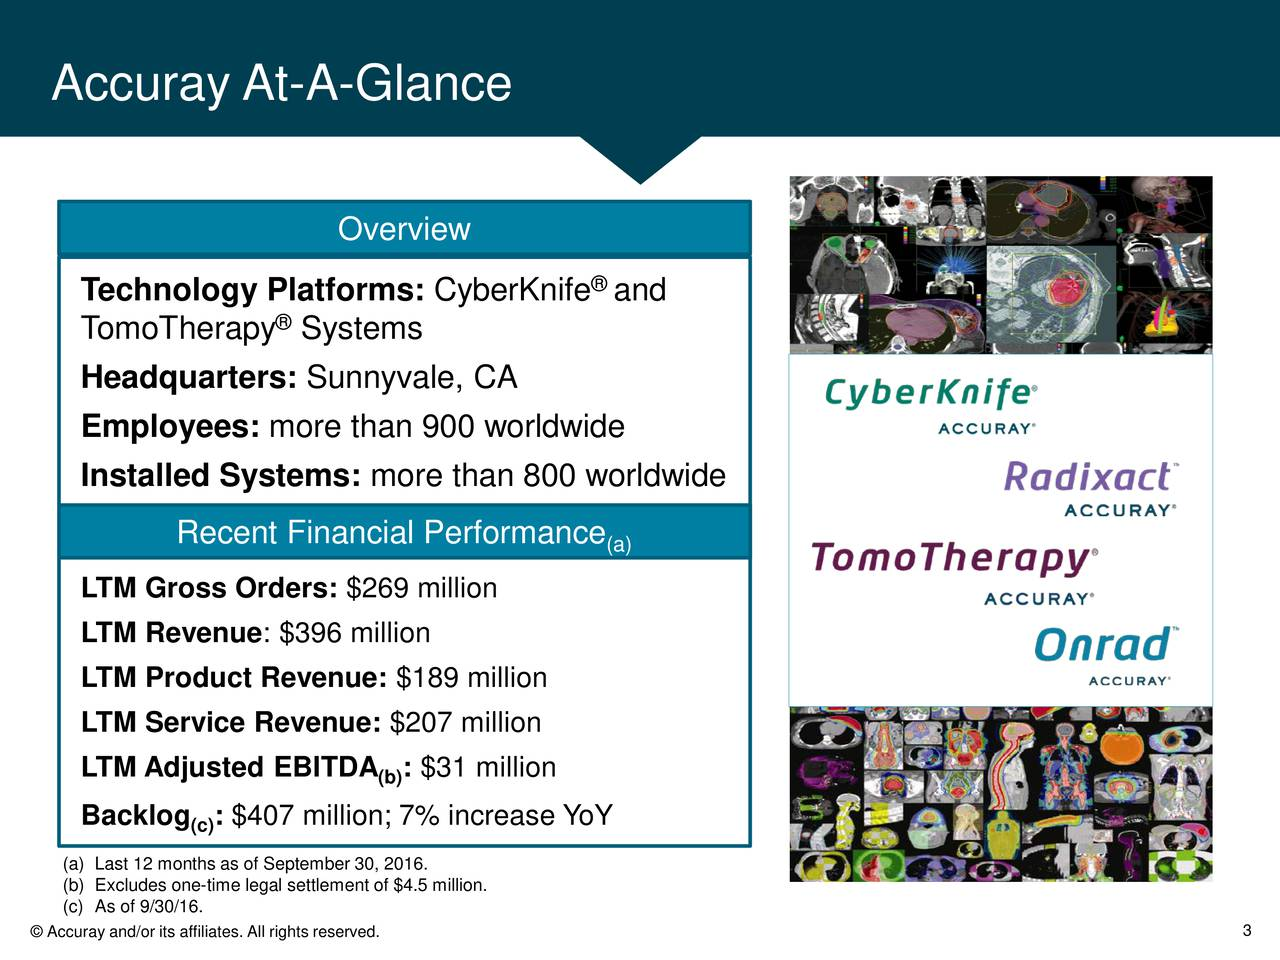 Overview Technology Platforms: CyberKnife and TomoTherapy Systems Headquarters: Sunnyvale, CA Employees: more than 900 worldwide Installed Systems: more than 800 worldwide Recent Financial Performance (a) LTM Gross Orders: $269 million LTMRevenue: $396 million LTM Product Revenue: $189 million LTMService Revenue: $207 million LTM Adjusted EBITDA (b) $31 million Backlog :(c)07 million; 7% increase YoY (b) Excludes one-time legal settlement of $4.5 million. (c) As of 9/30/16. Accuray and/or its affiliates. All rights reserved. 3